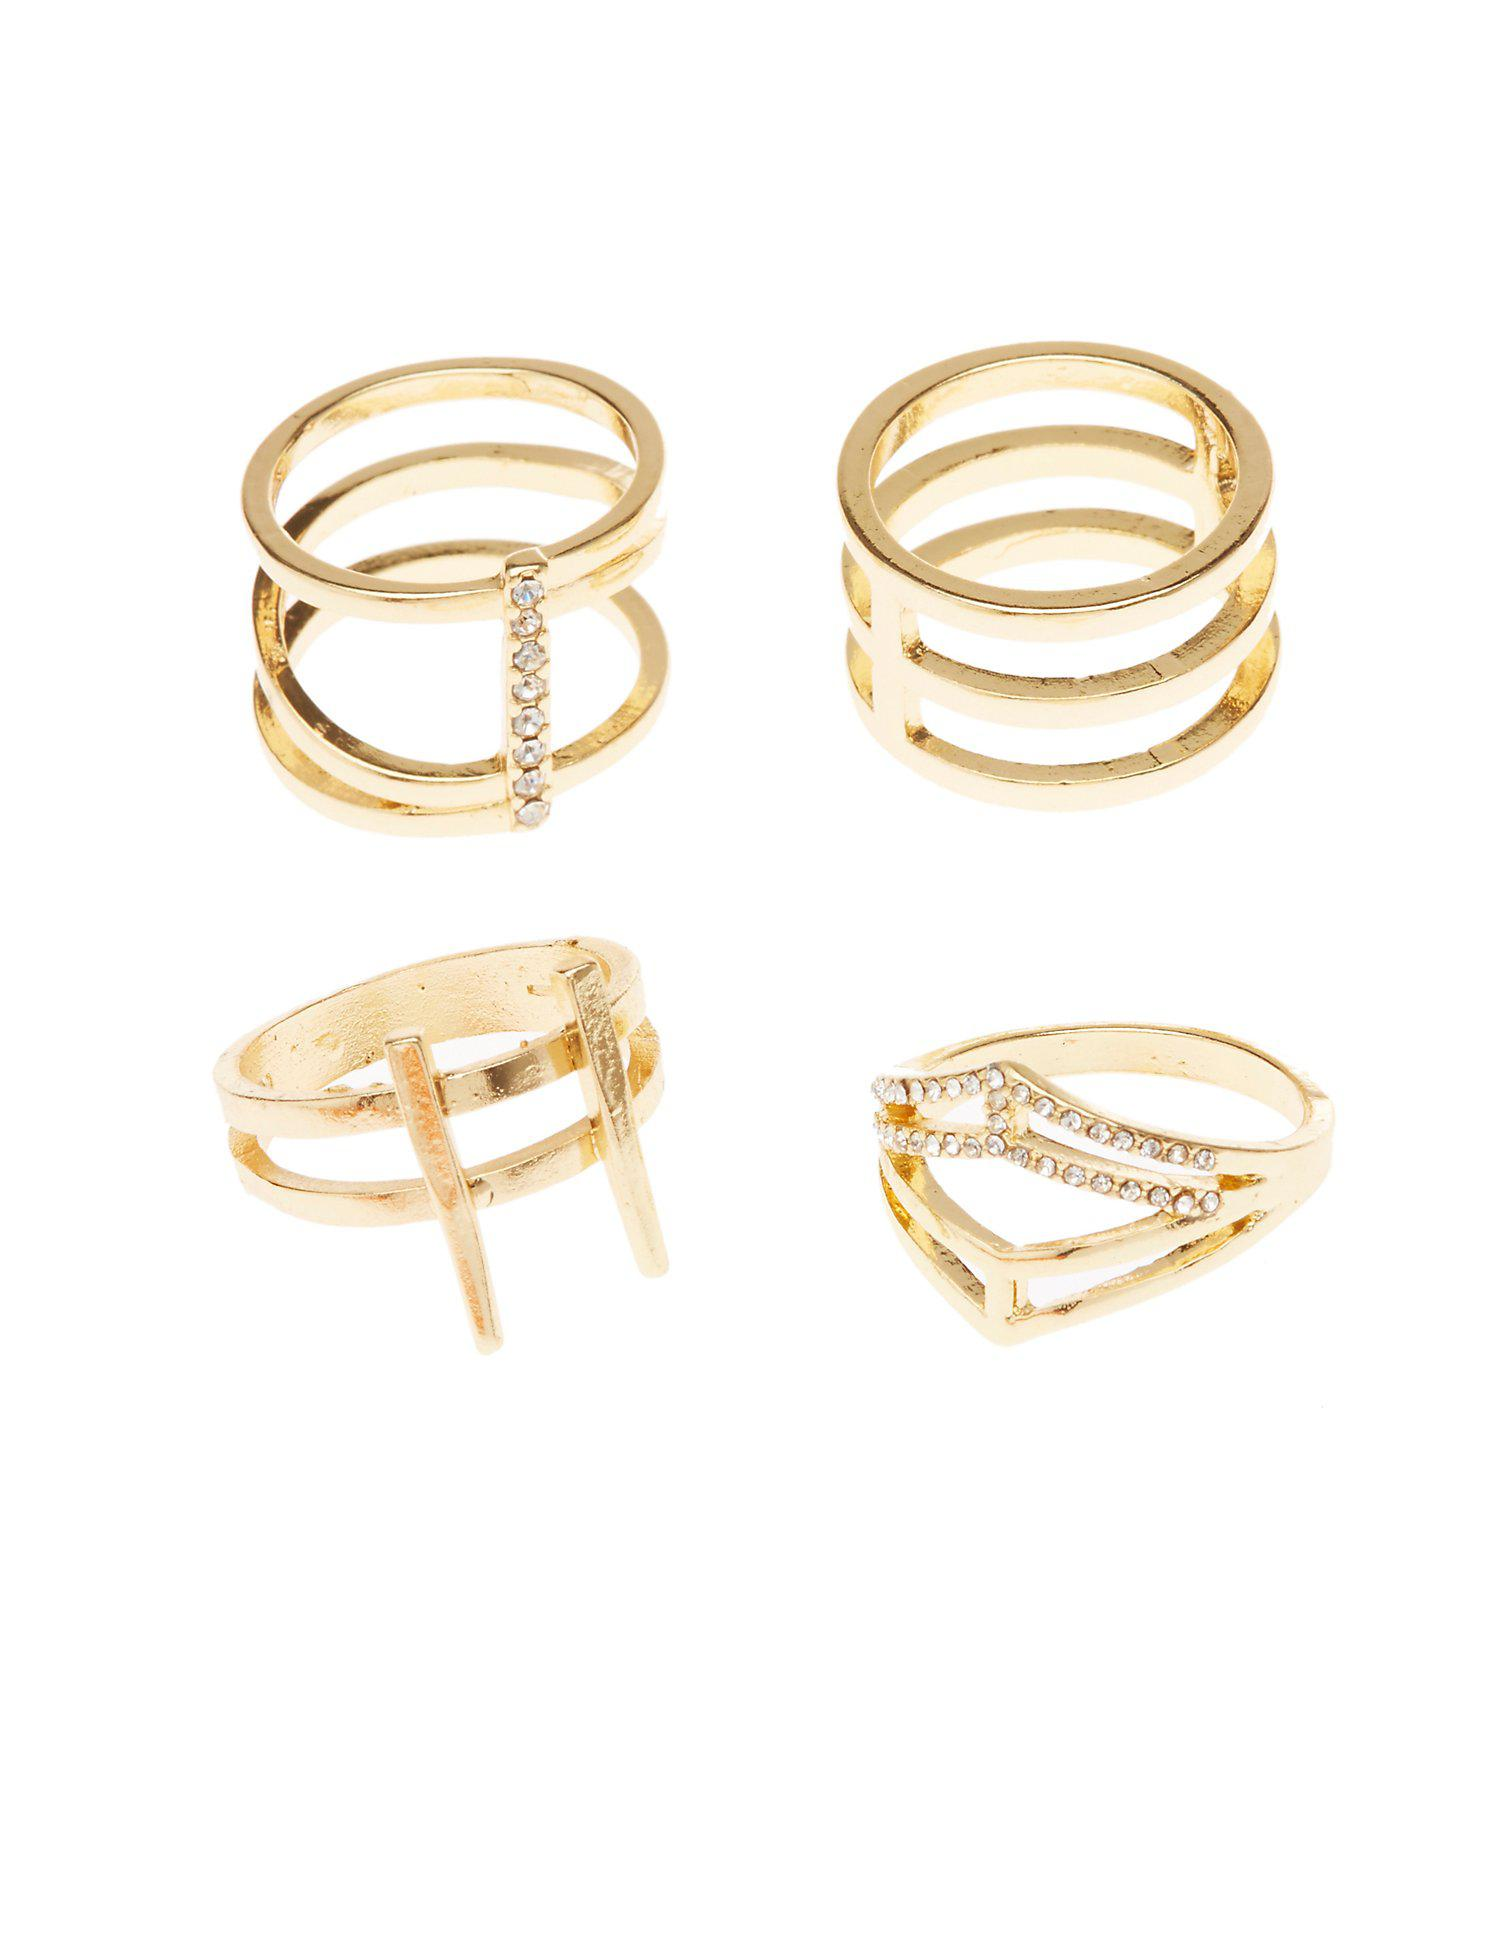 by royal ring collection rings fire stone sondore pin caged anita